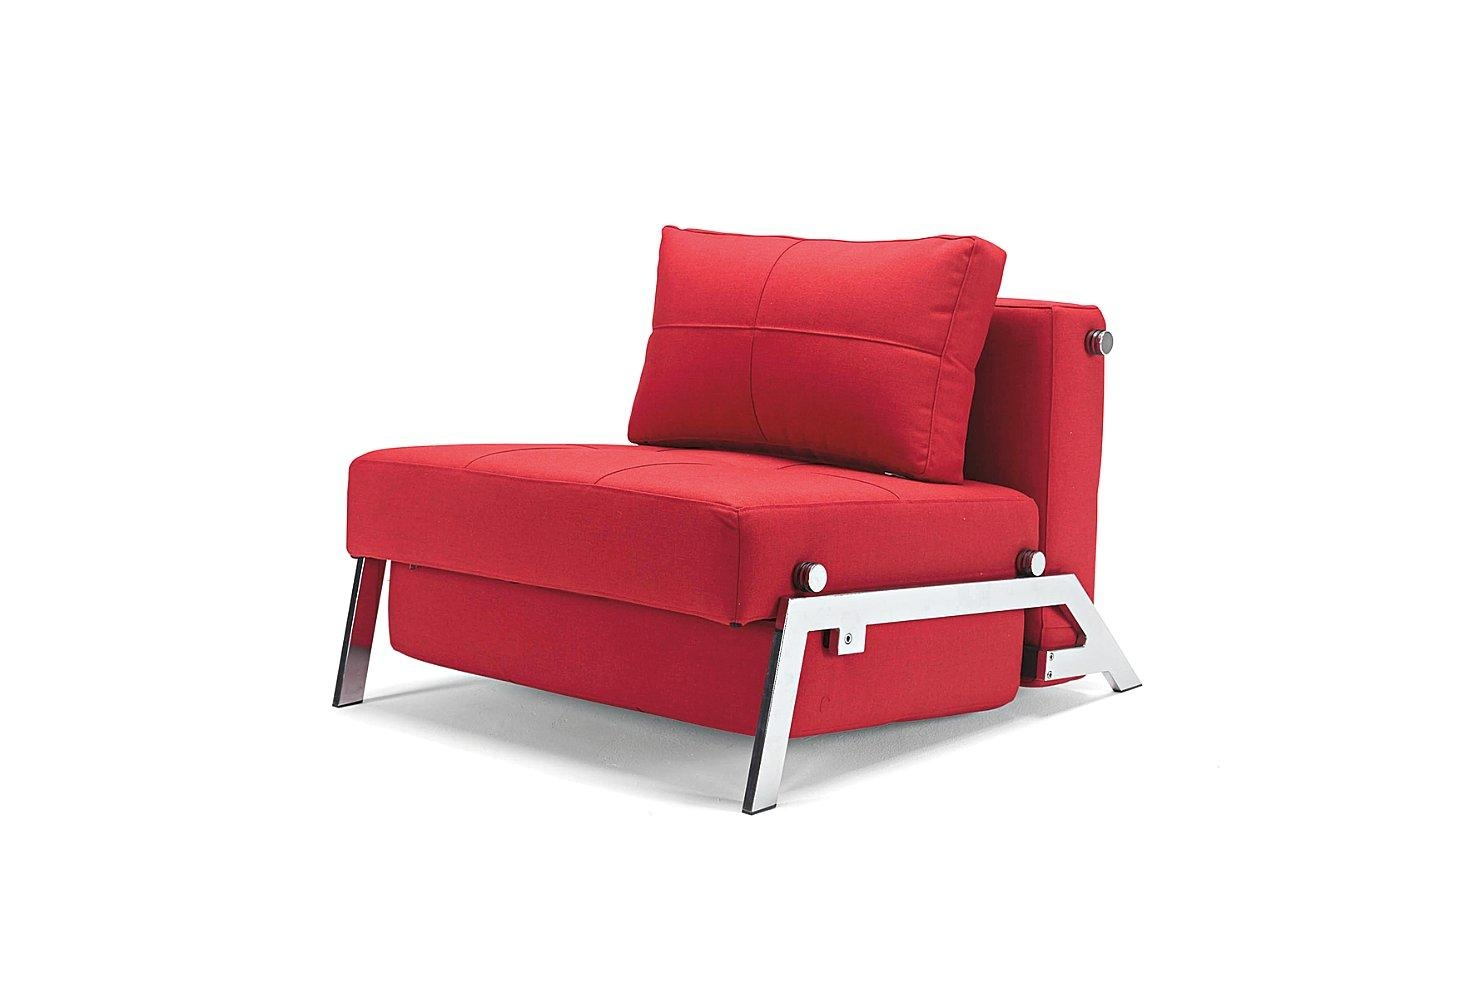 Single Sofa Bed Chair Within Cheap Single Sofa Bed Chairs (View 2 of 20)